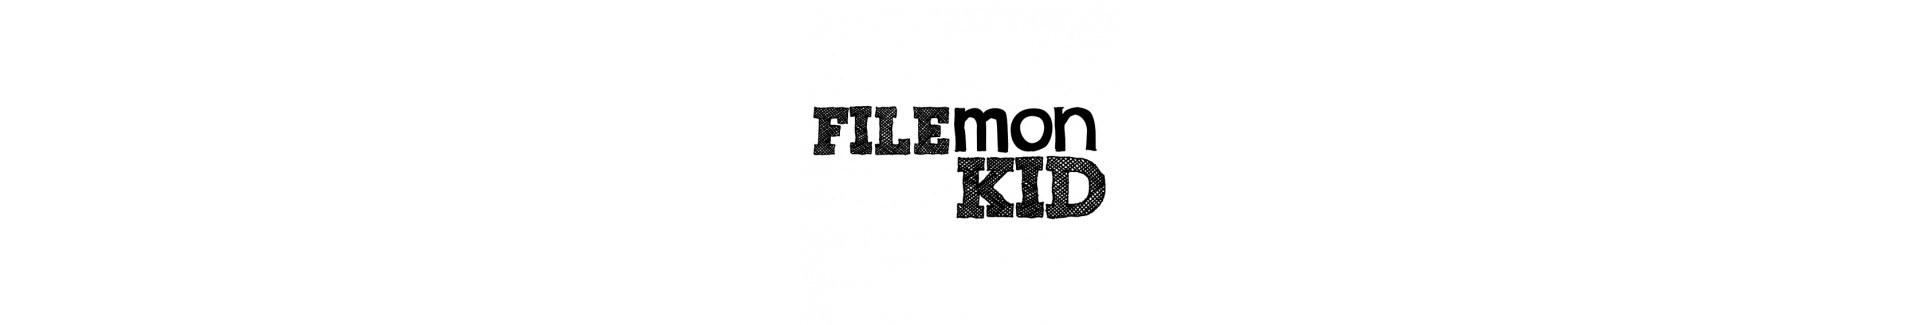 Filemon Kid